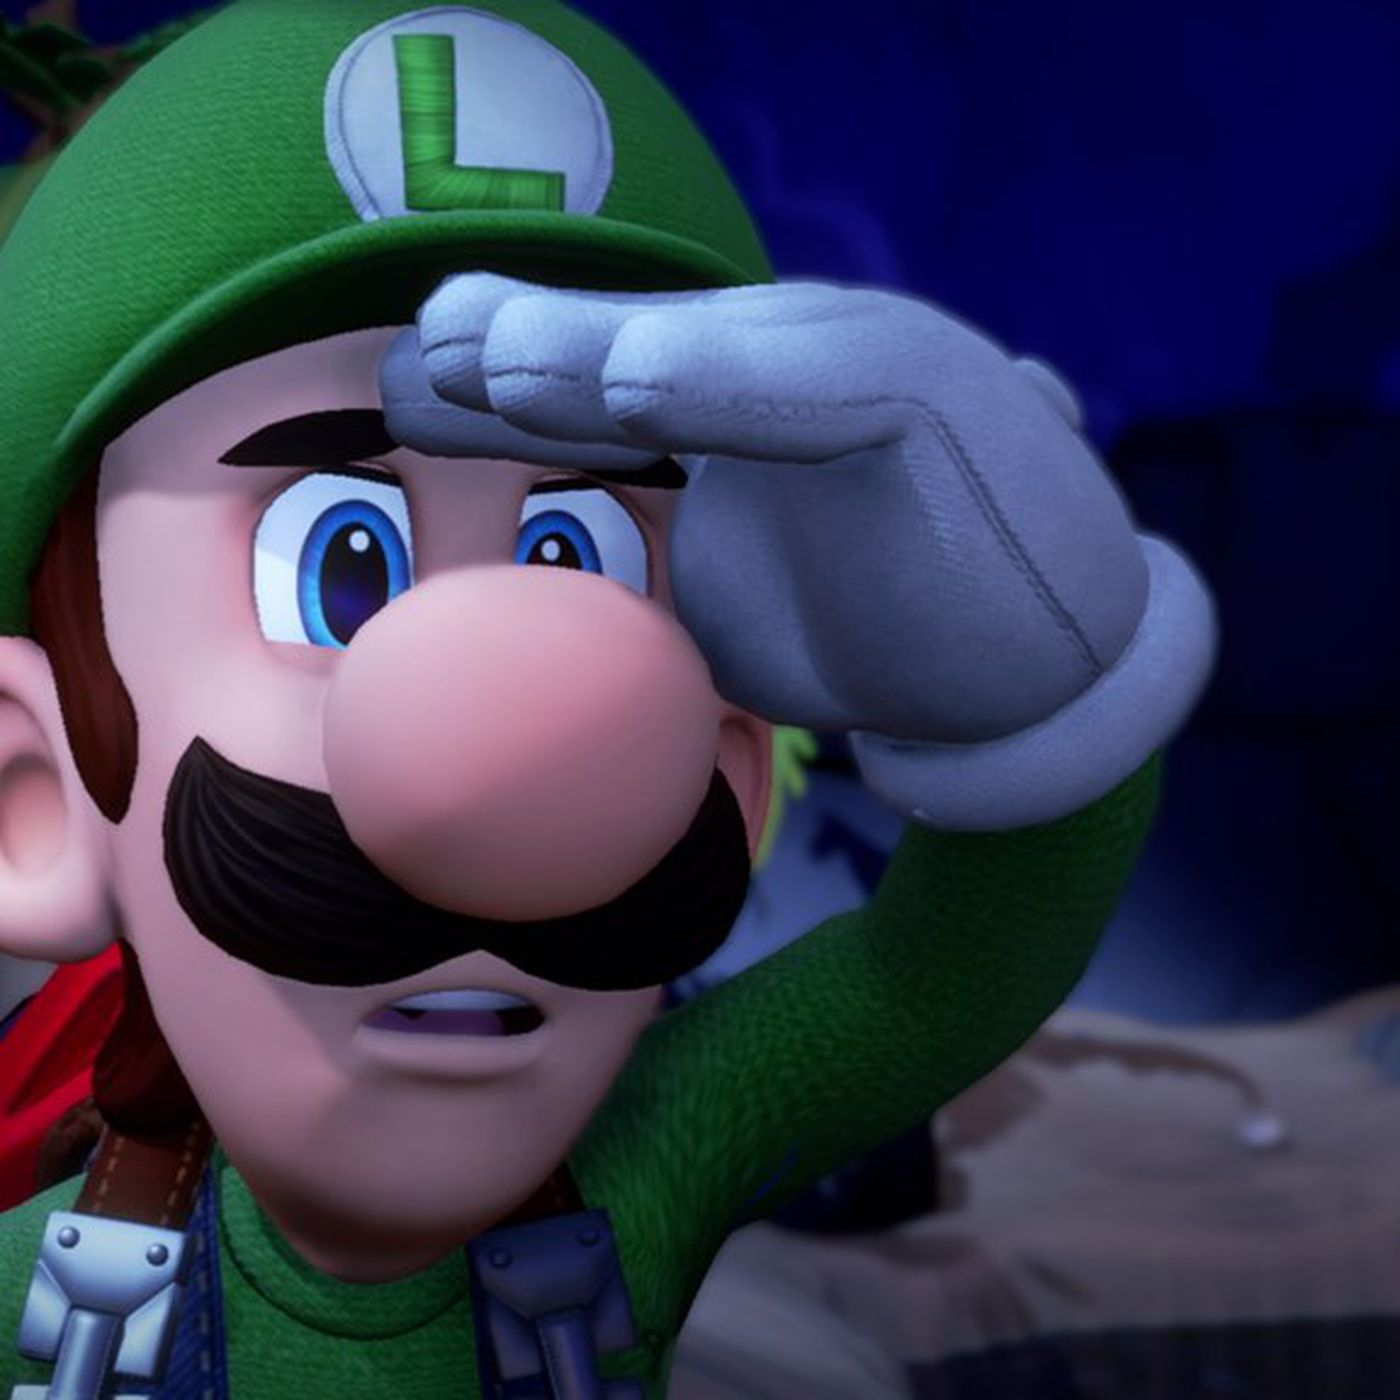 Luigi S Mansion 3 Review Perfectly Silly Slapstick Comedy The Verge